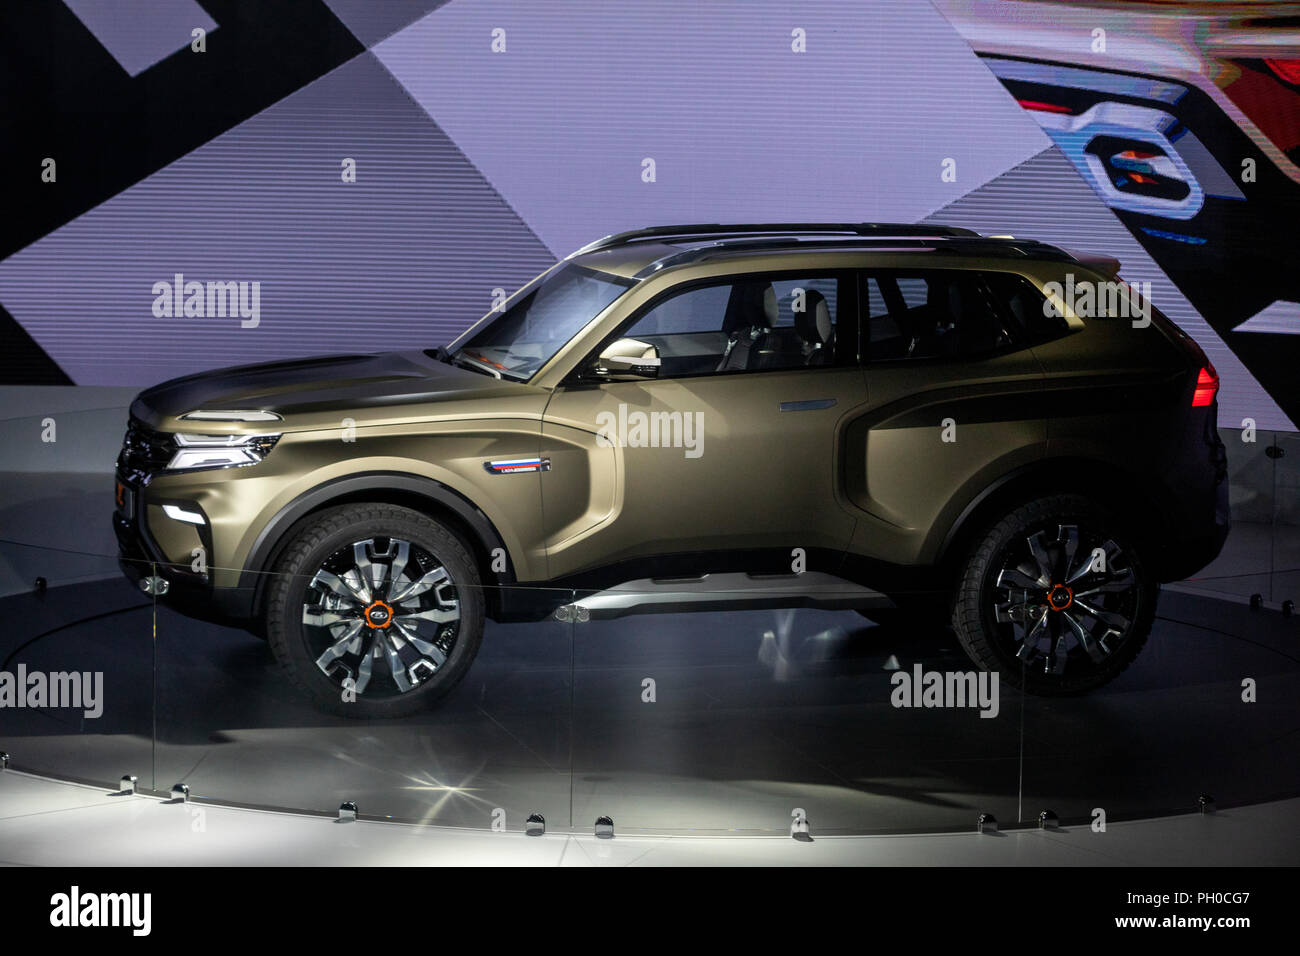 Moscow, Russia. 29th August 2018. A concept Lada 4x4 Vision offroader unveiled at the 2018 Moscow International Motor Show at the Crocus Expo exhibition center Credit: Nikolay Vinokurov/Alamy Live News - Stock Image